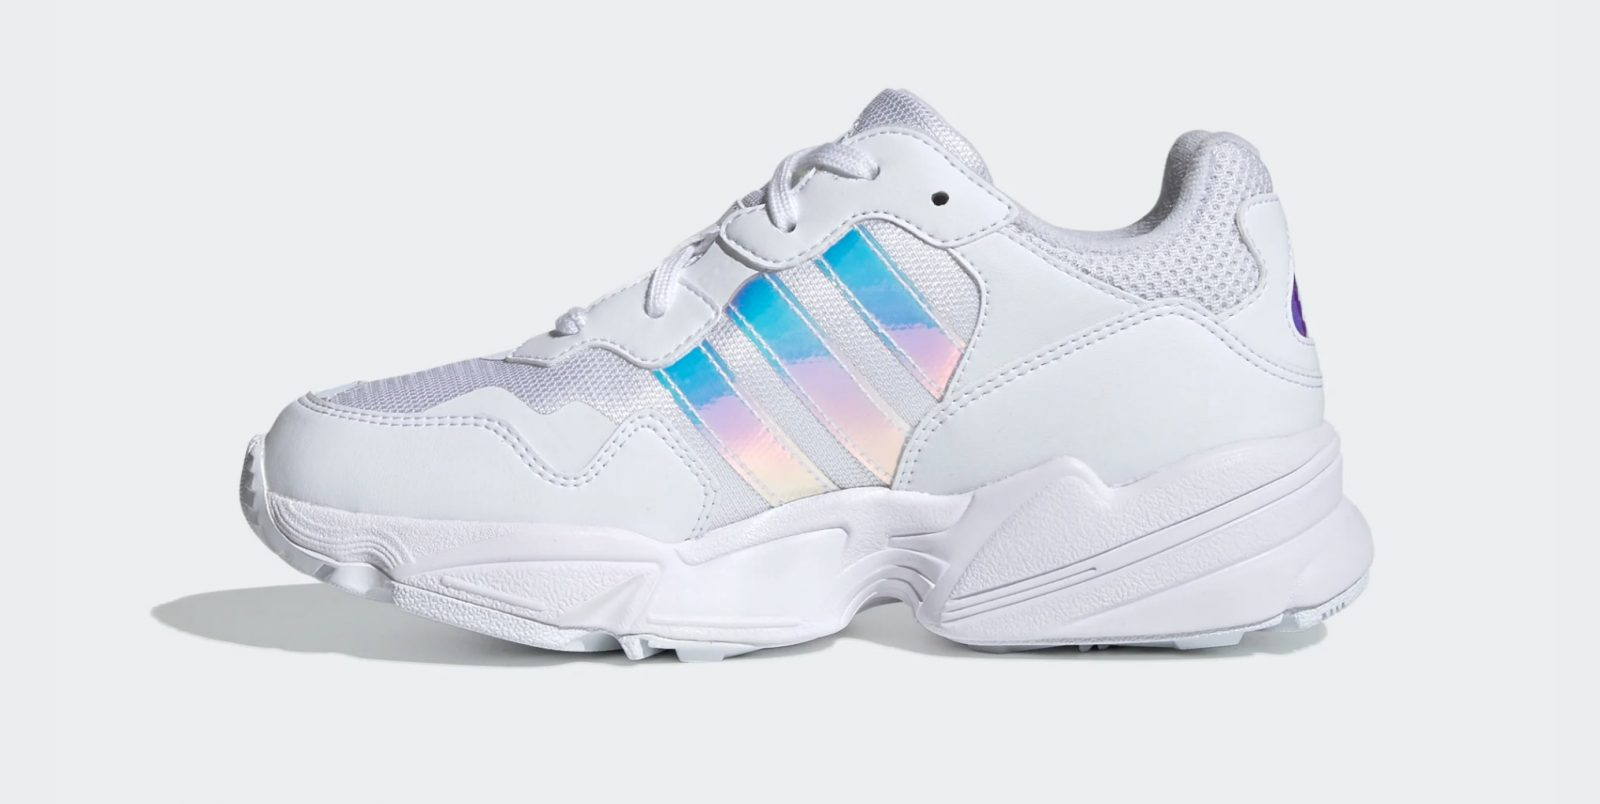 adidas Yung-96 Cloud White side